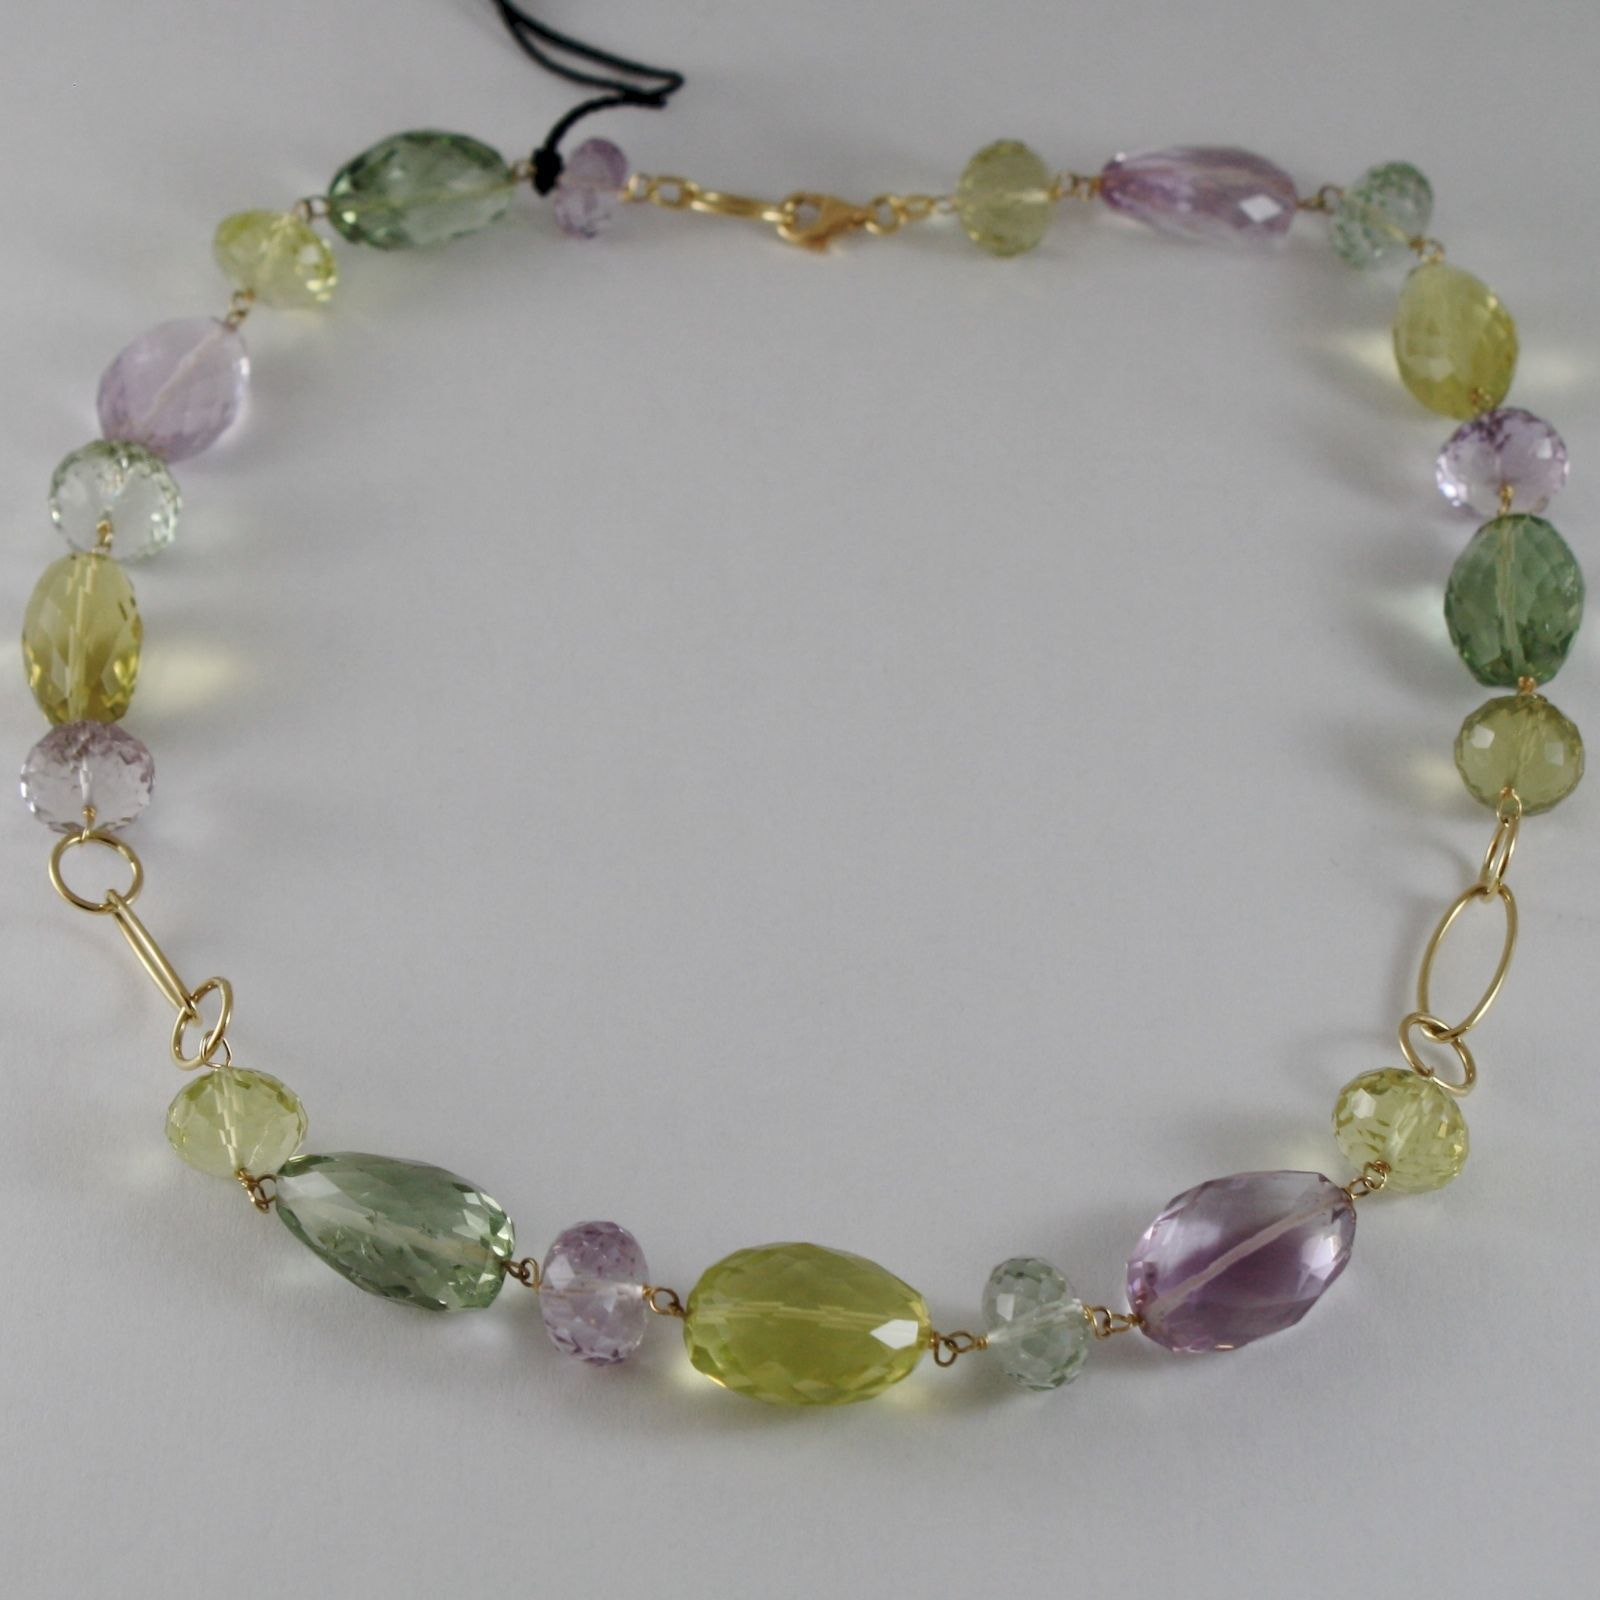 18K YELLOW GOLD NECKLACE BIG CUSHION AMETHYST LEMON QUARTZ PRASIOLITE ITALY MADE